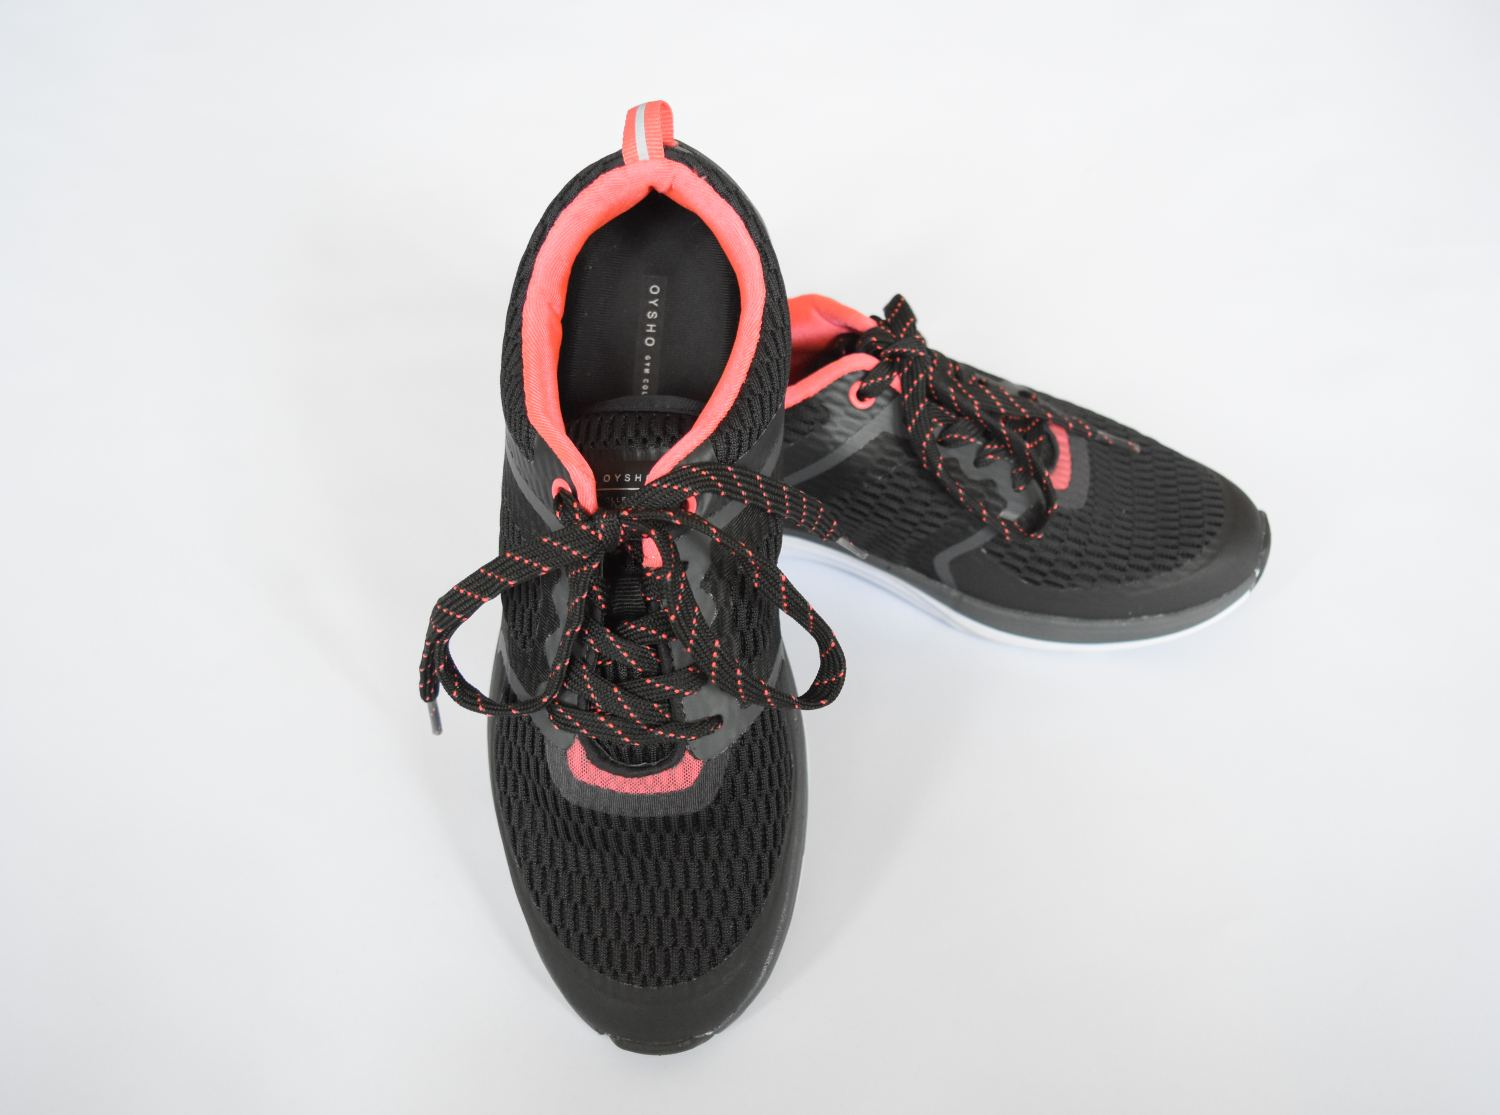 Sevgin-Goktas-Ozsan-New-shoes-Oysho-Sportswear-Shopping-2